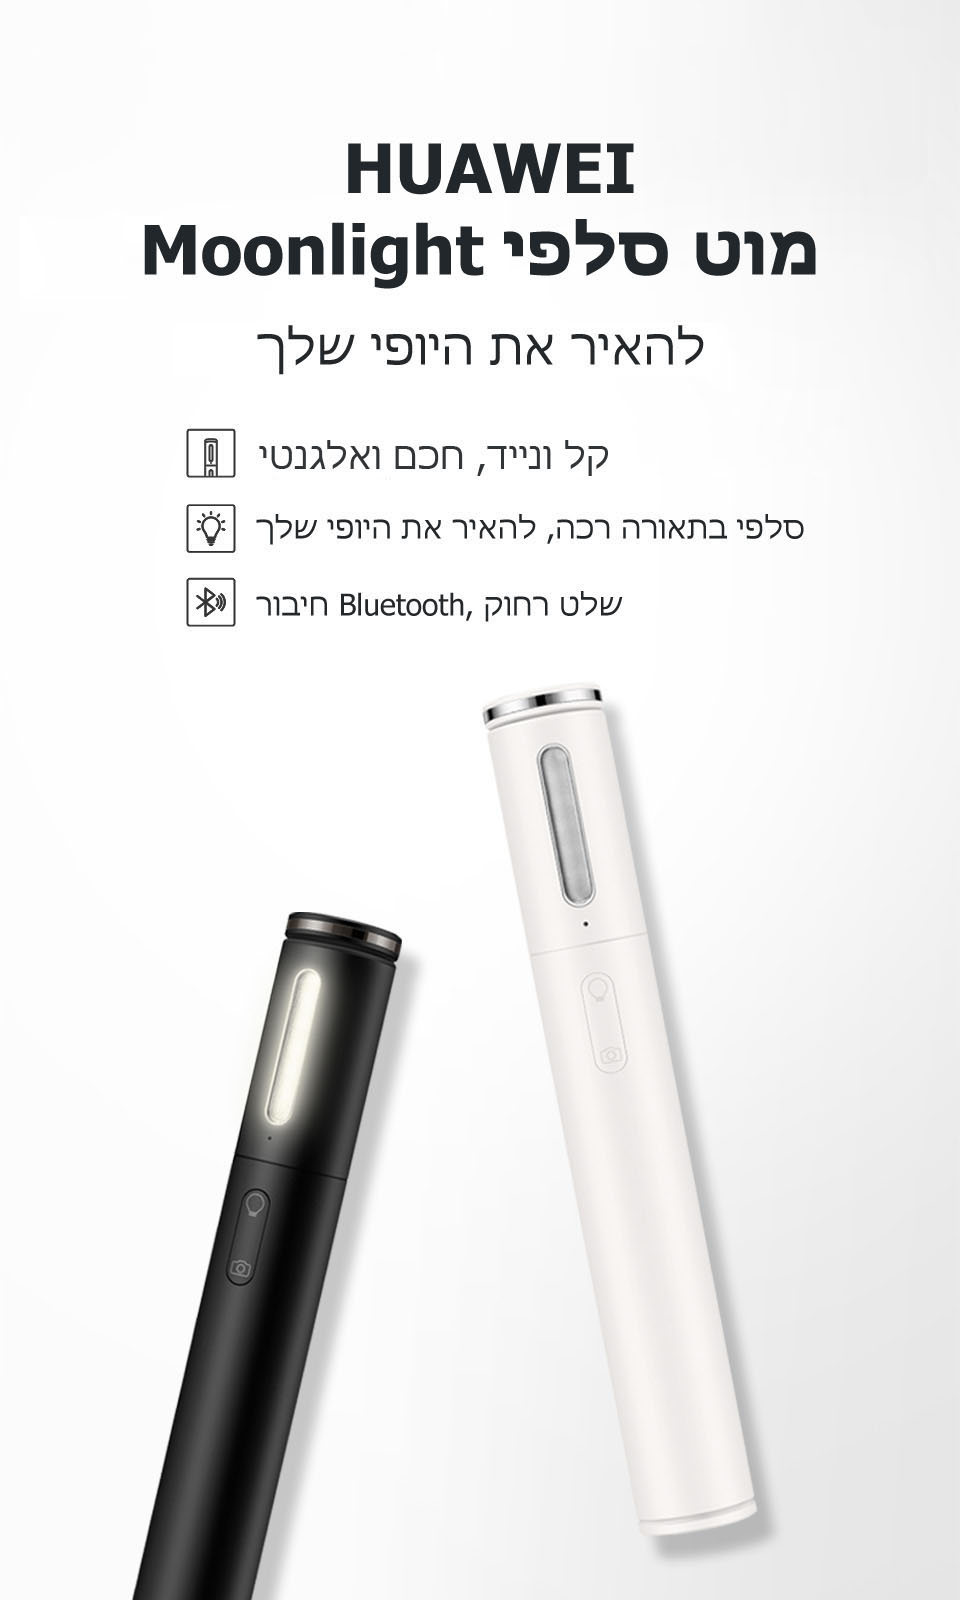 HUAWEI Moonlight Selfie Stick